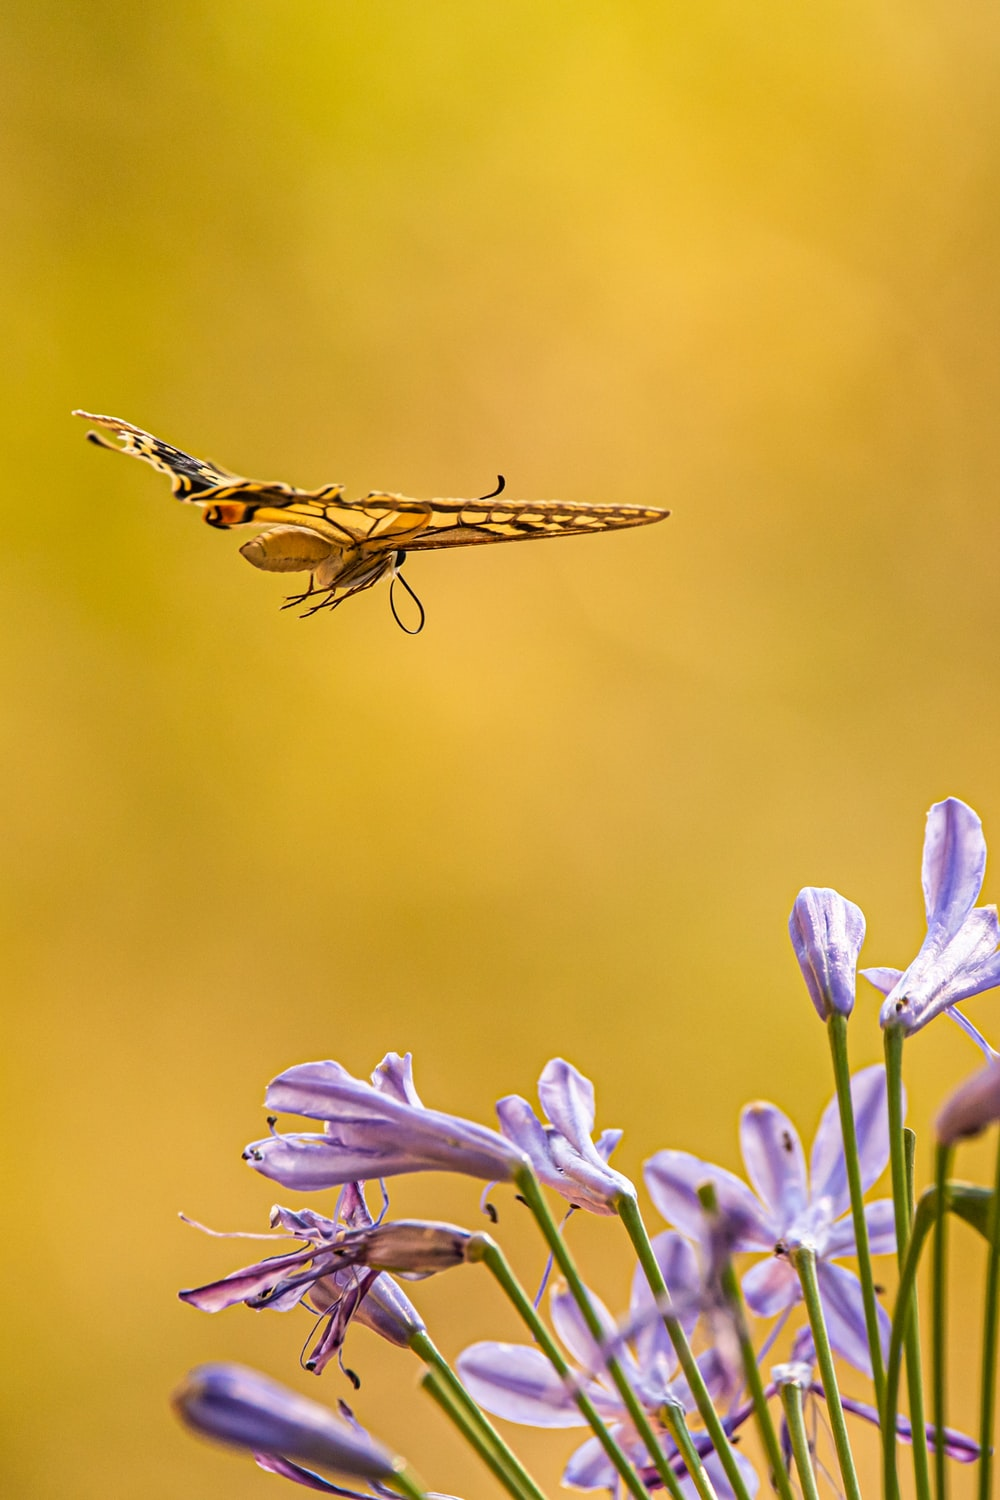 brown and black dragonfly perched on purple flower in close up photography during daytime